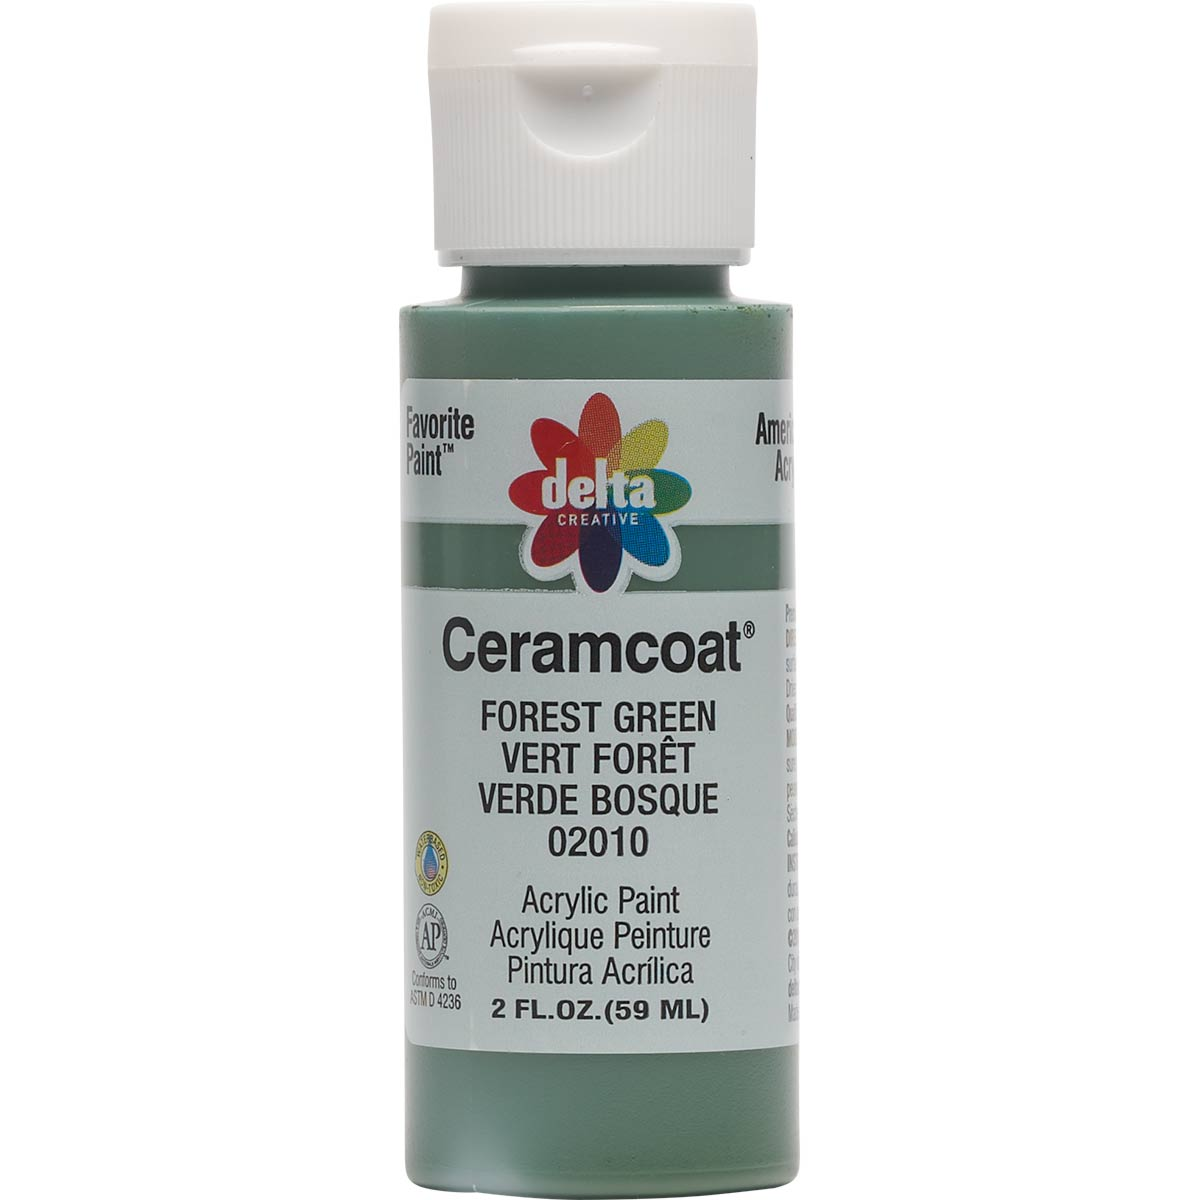 Delta Ceramcoat ® Acrylic Paint - Forest Green, 2 oz.